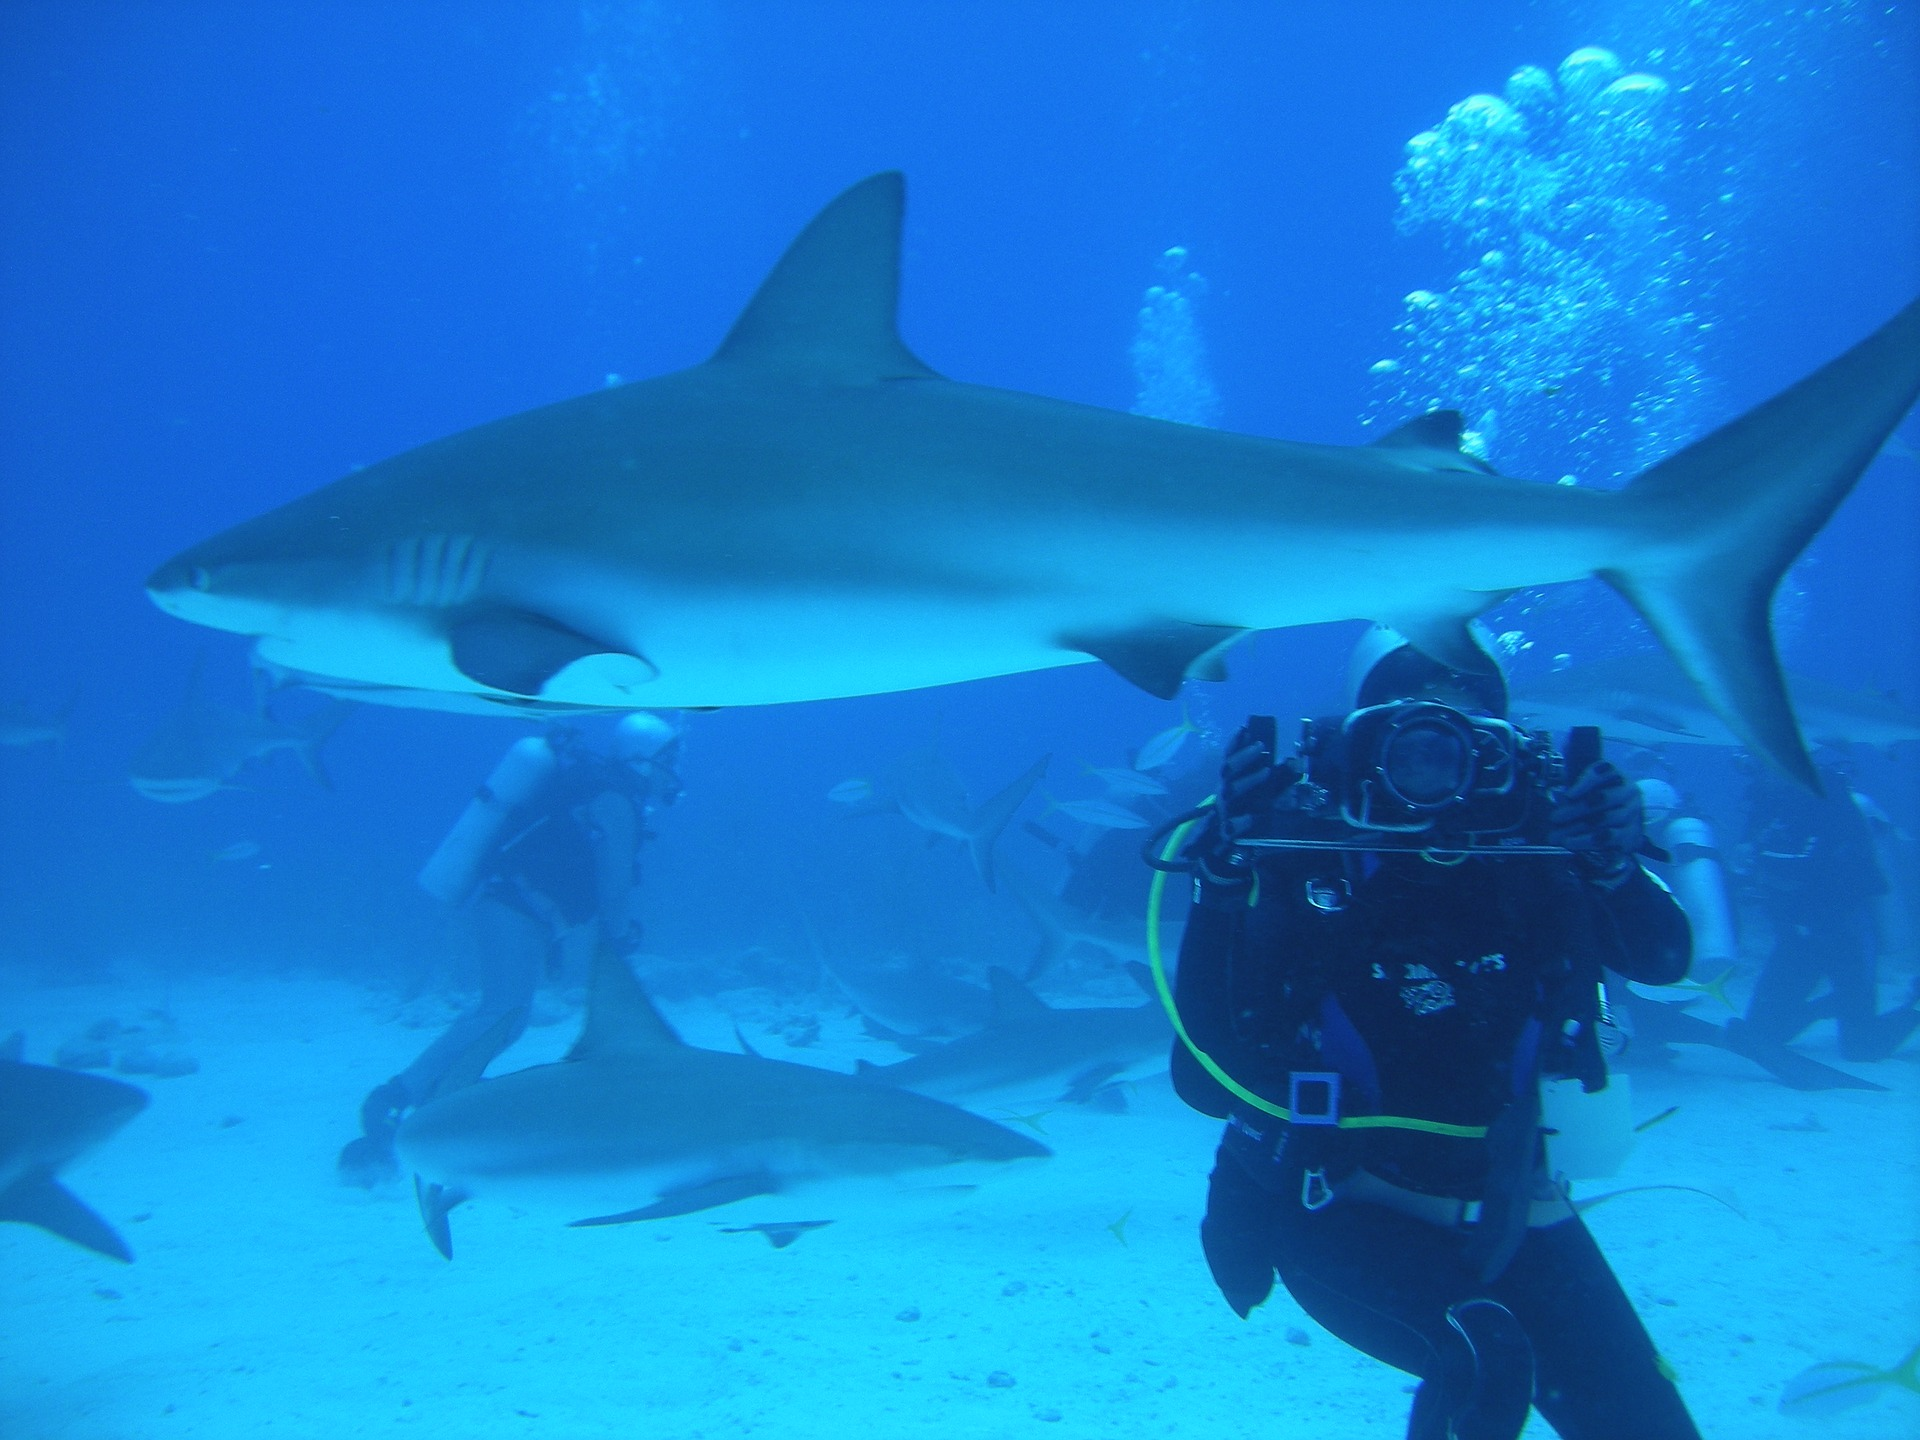 diver with camera underwater in the Bahamas swimming with sharks